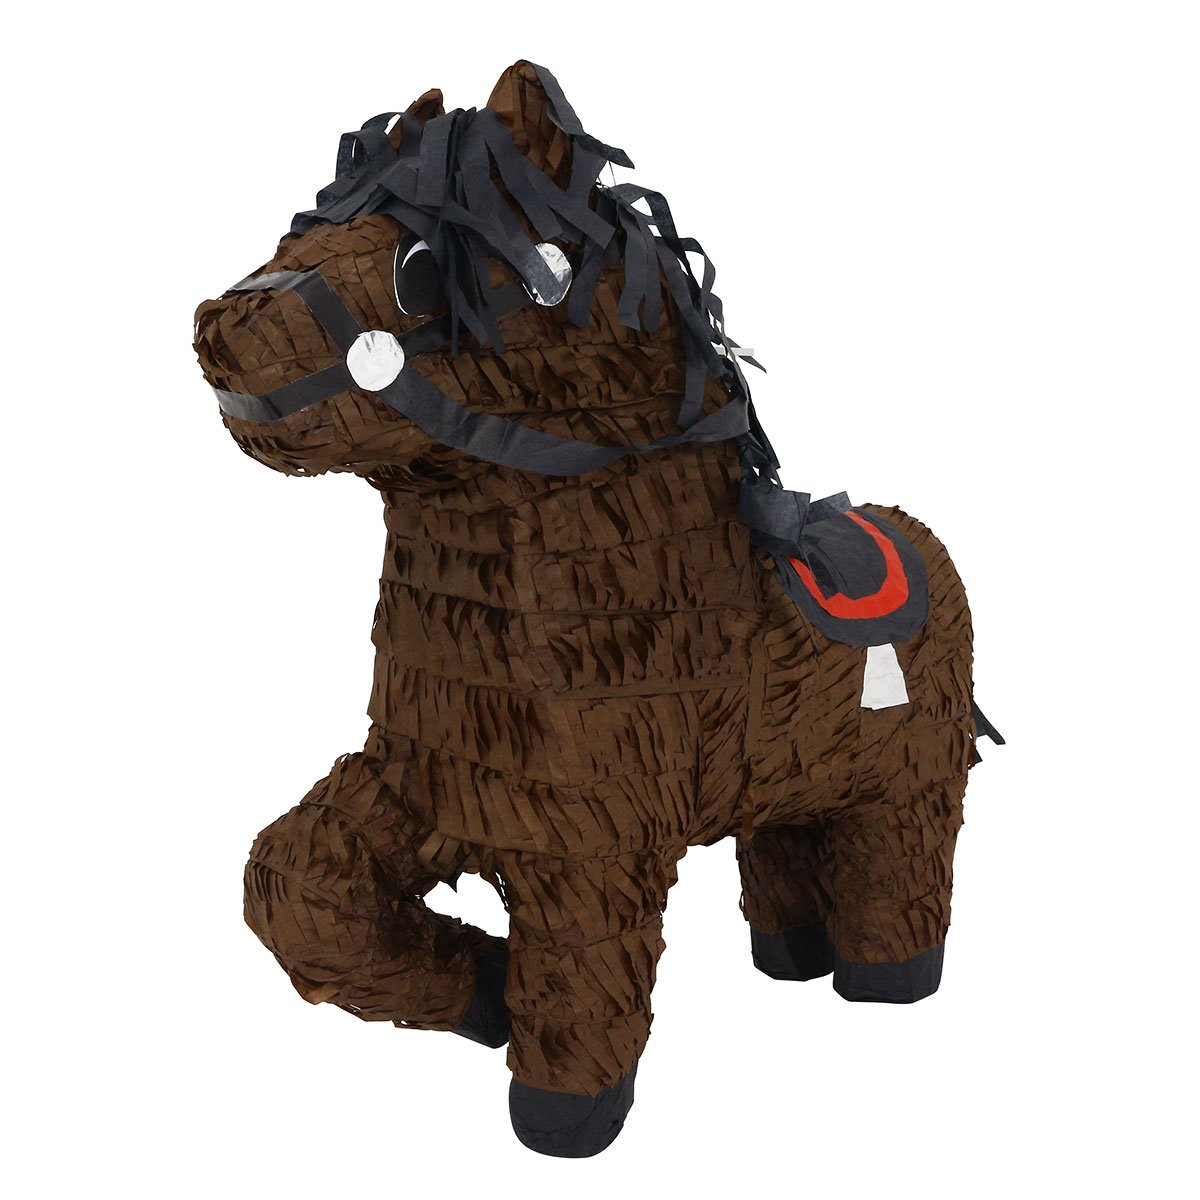 LYTIO – Realistic Brown Horse with Folded Leg Pinata (Piñata) - Design for Desert/West and/or Animal Theme Parties, Décor, Photo Prop, Center Piece. by LYTIO